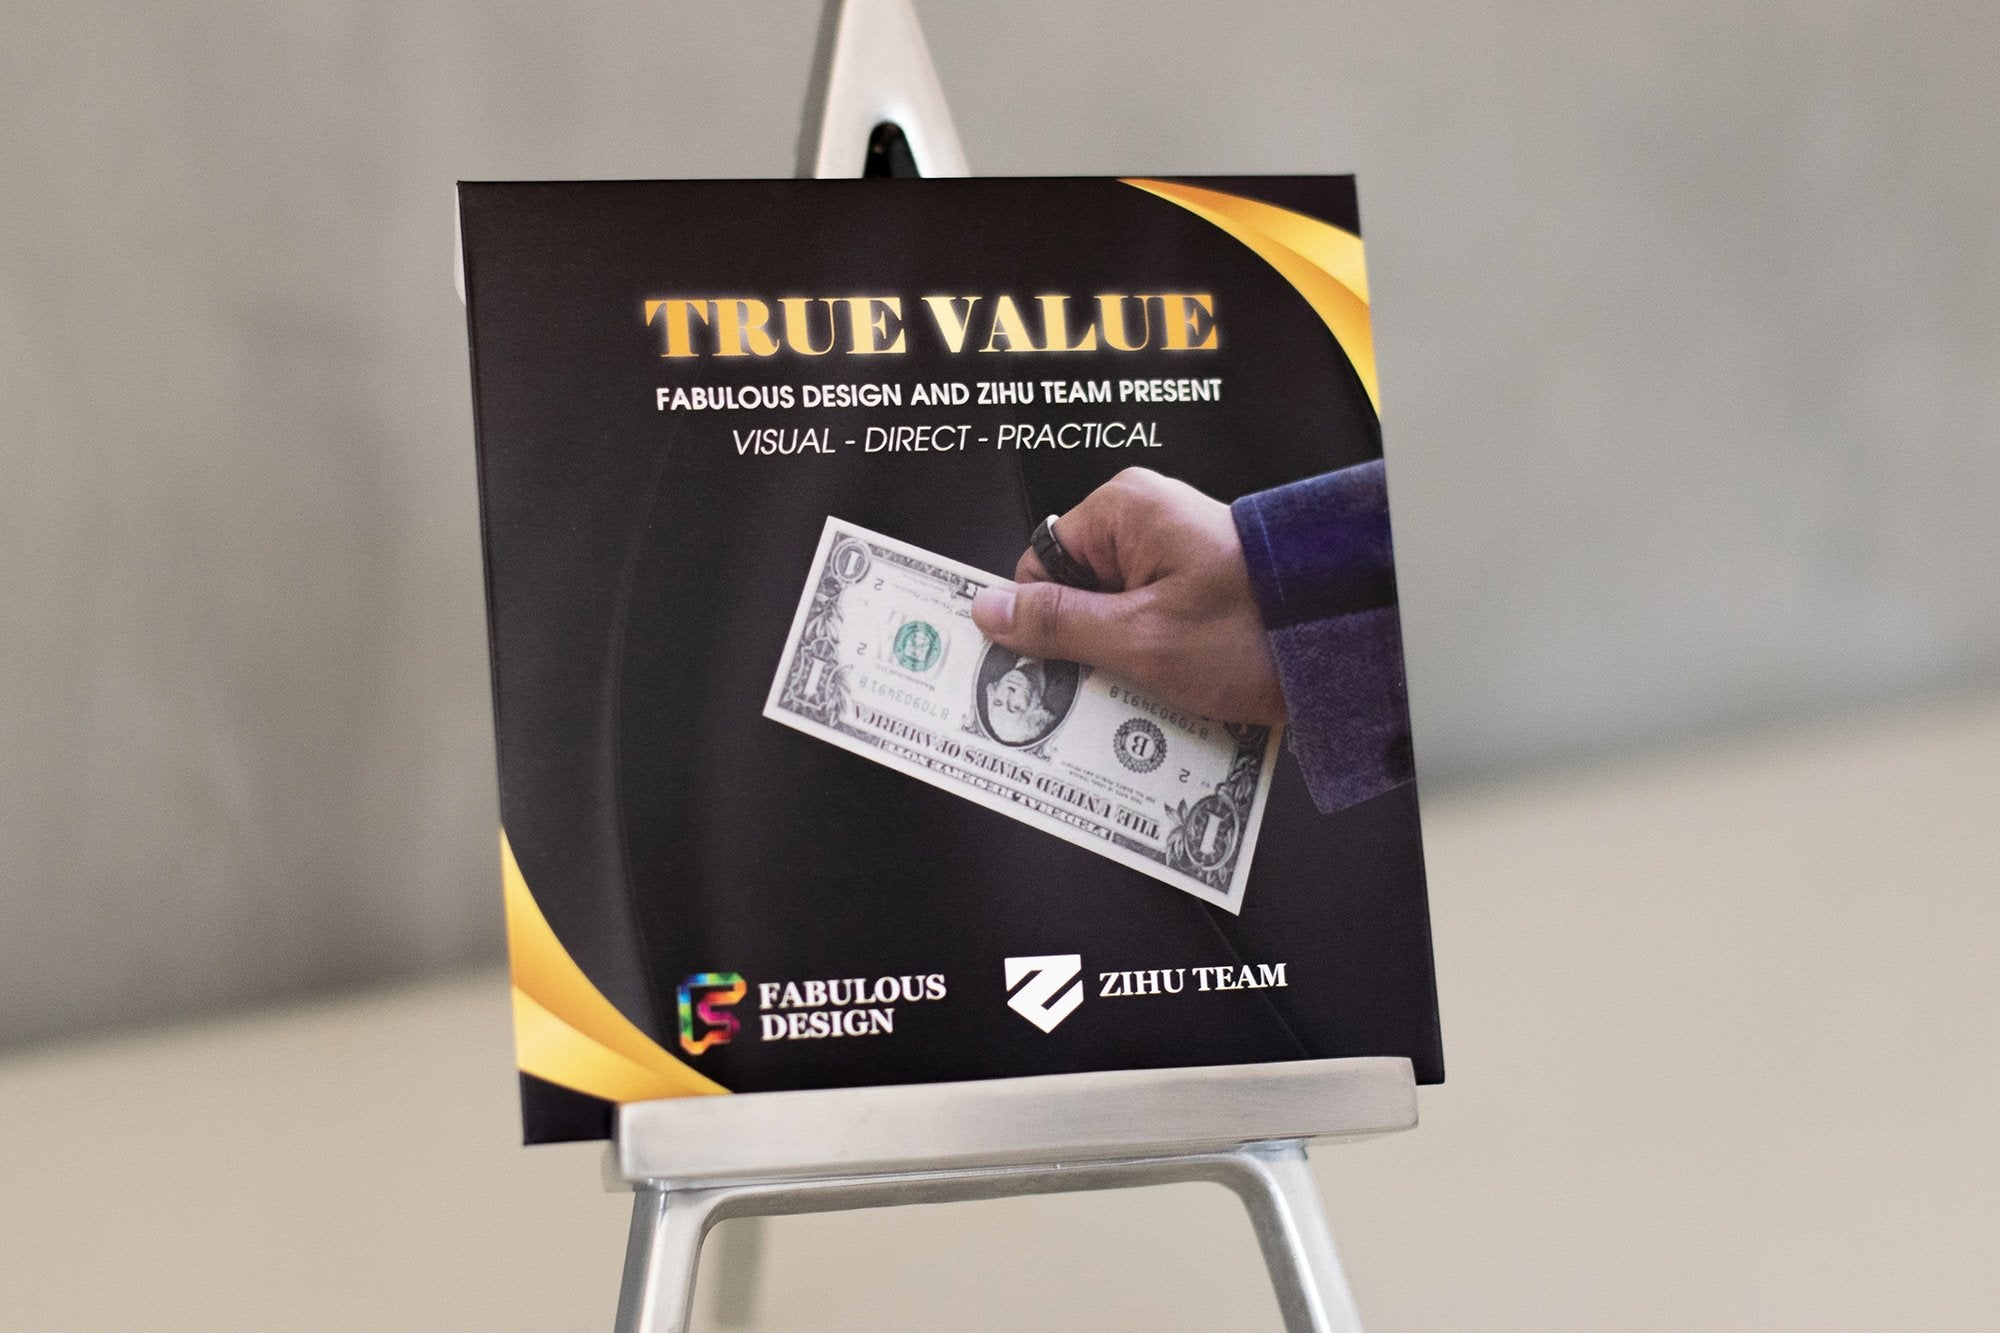 TRUE VALUE Galerie